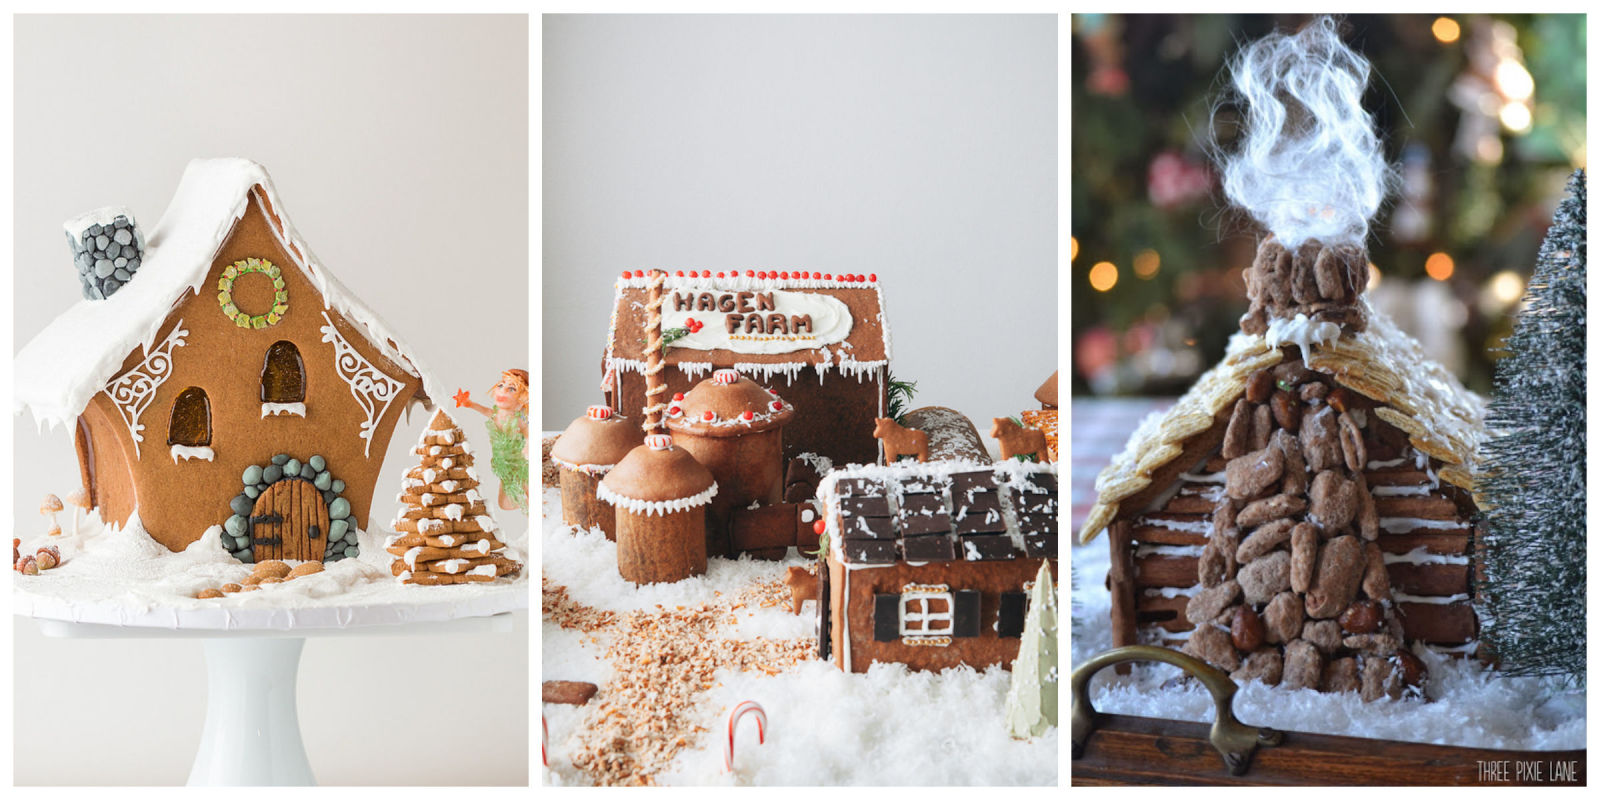 Gingerbread house decorating online